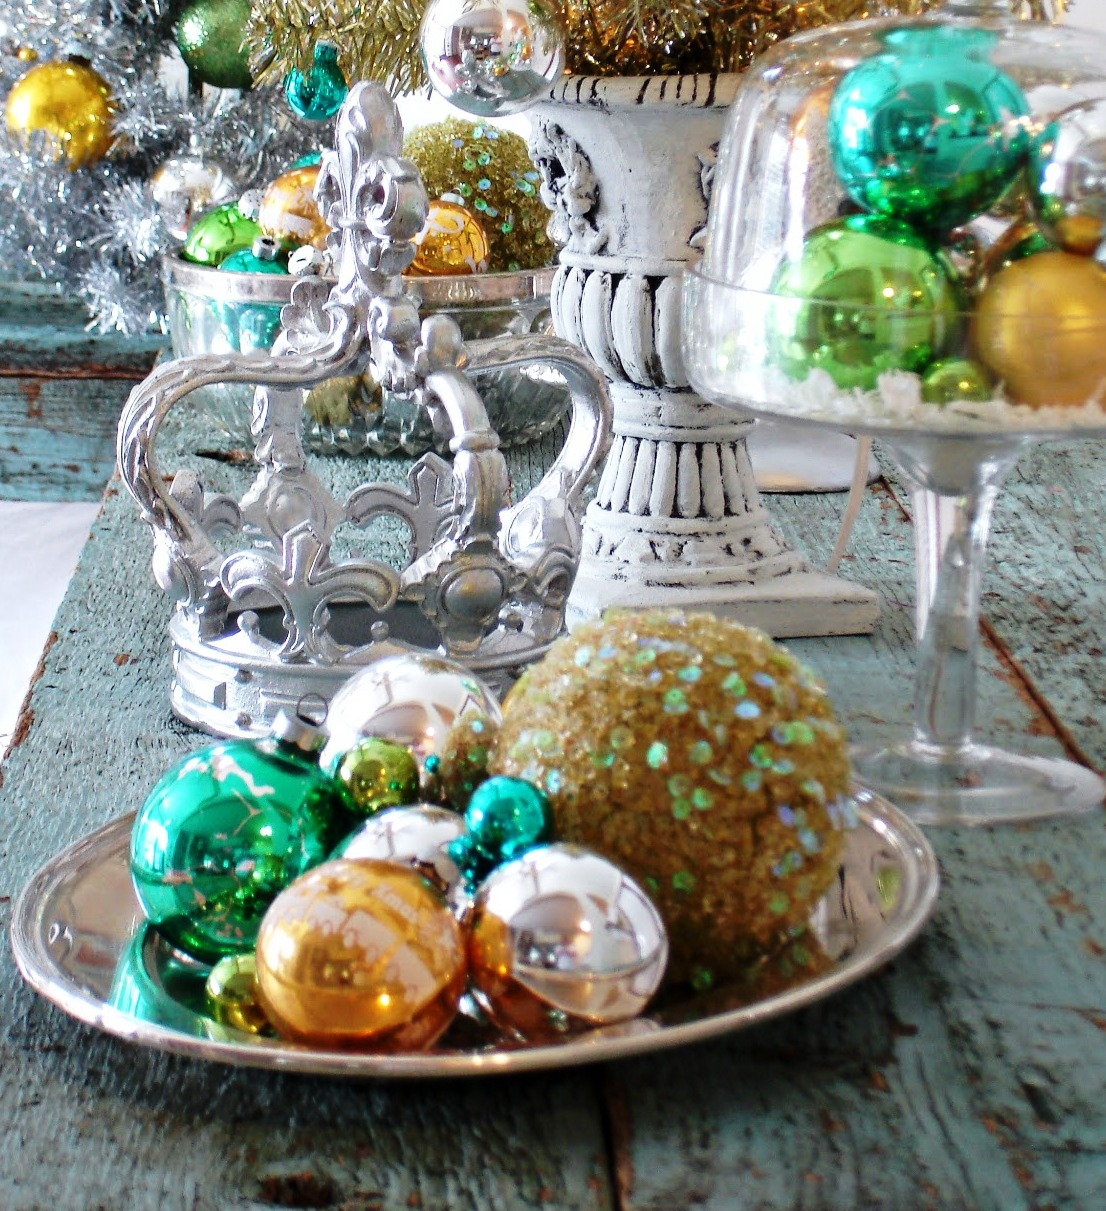 Christmas Decor Vintage Retro Shiny Brite Ornament Display Silver Platter Cloche framed